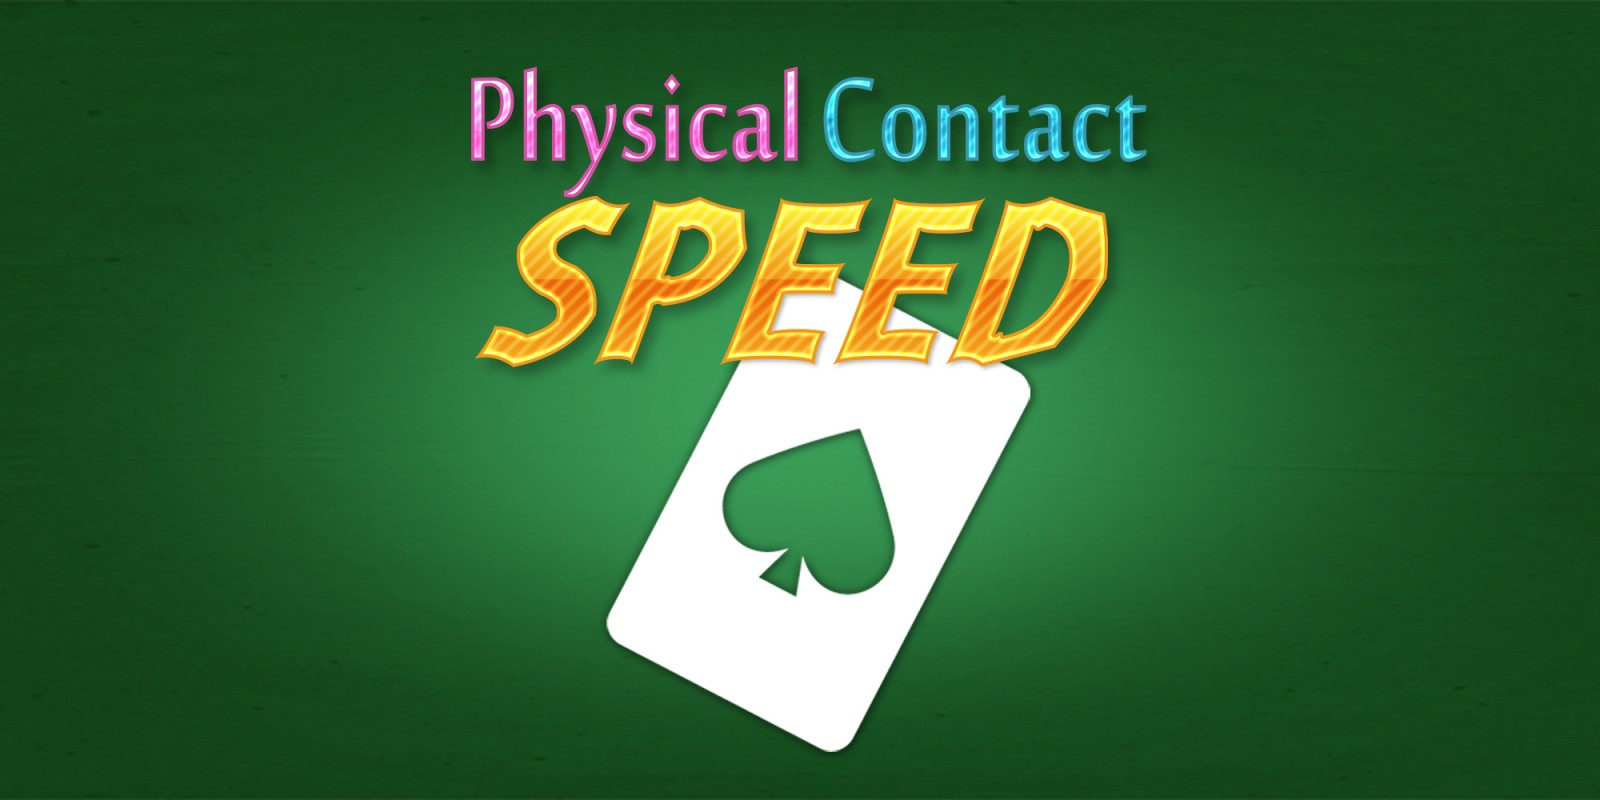 Physical Contact: SPEED